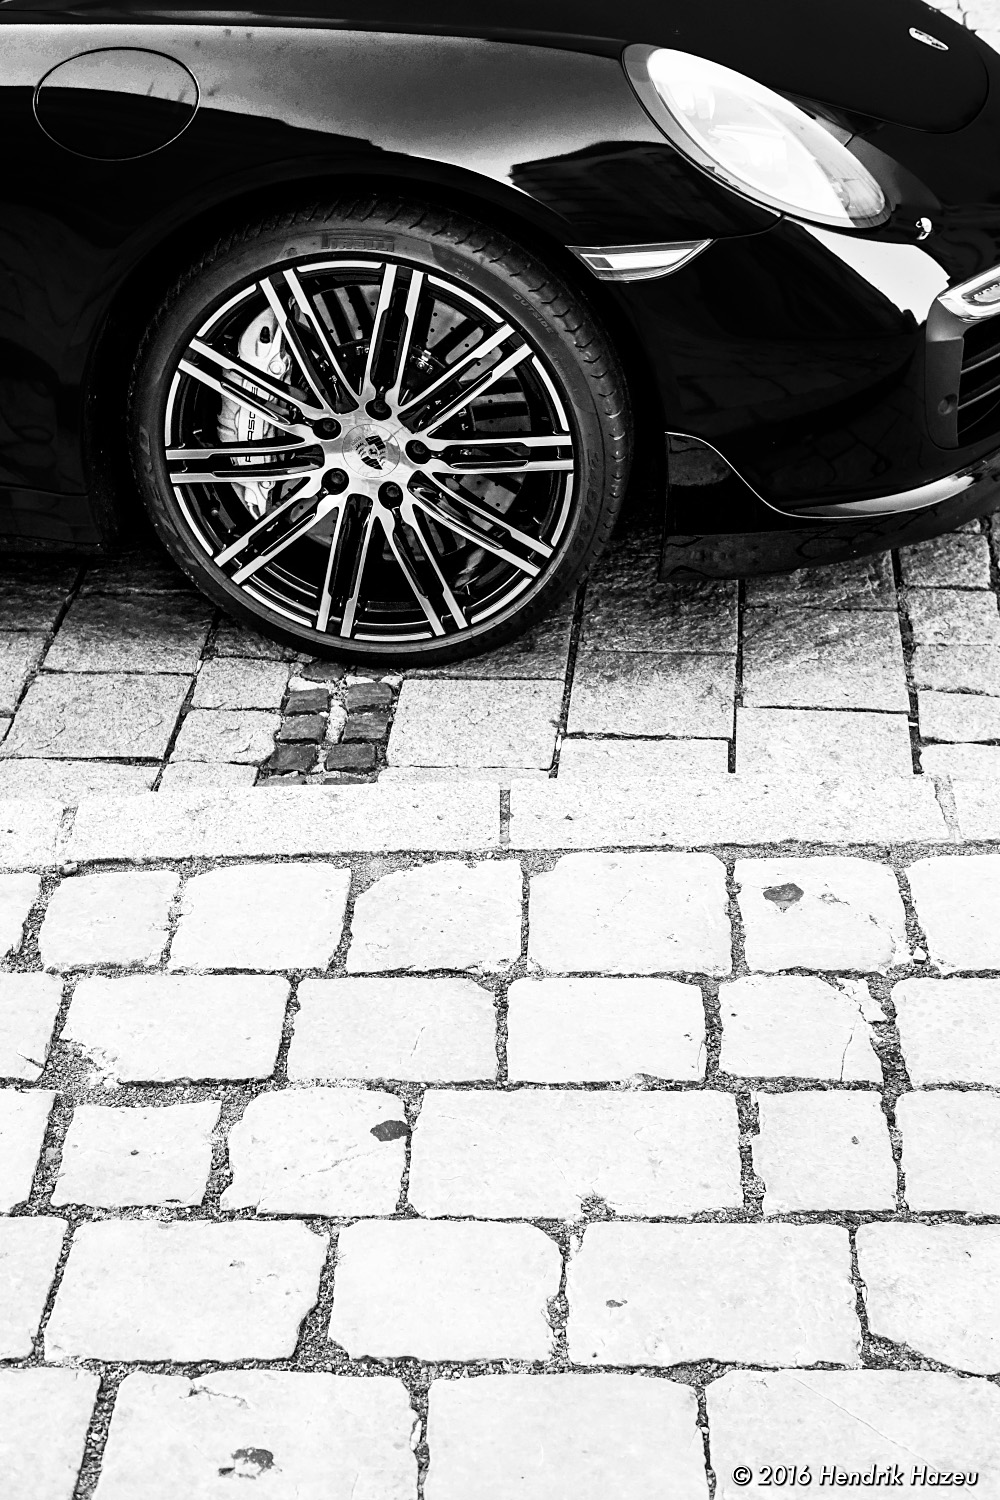 Modern wheel vs. old pavement - captured with XF 35 mm f2 WR on X-Pro2